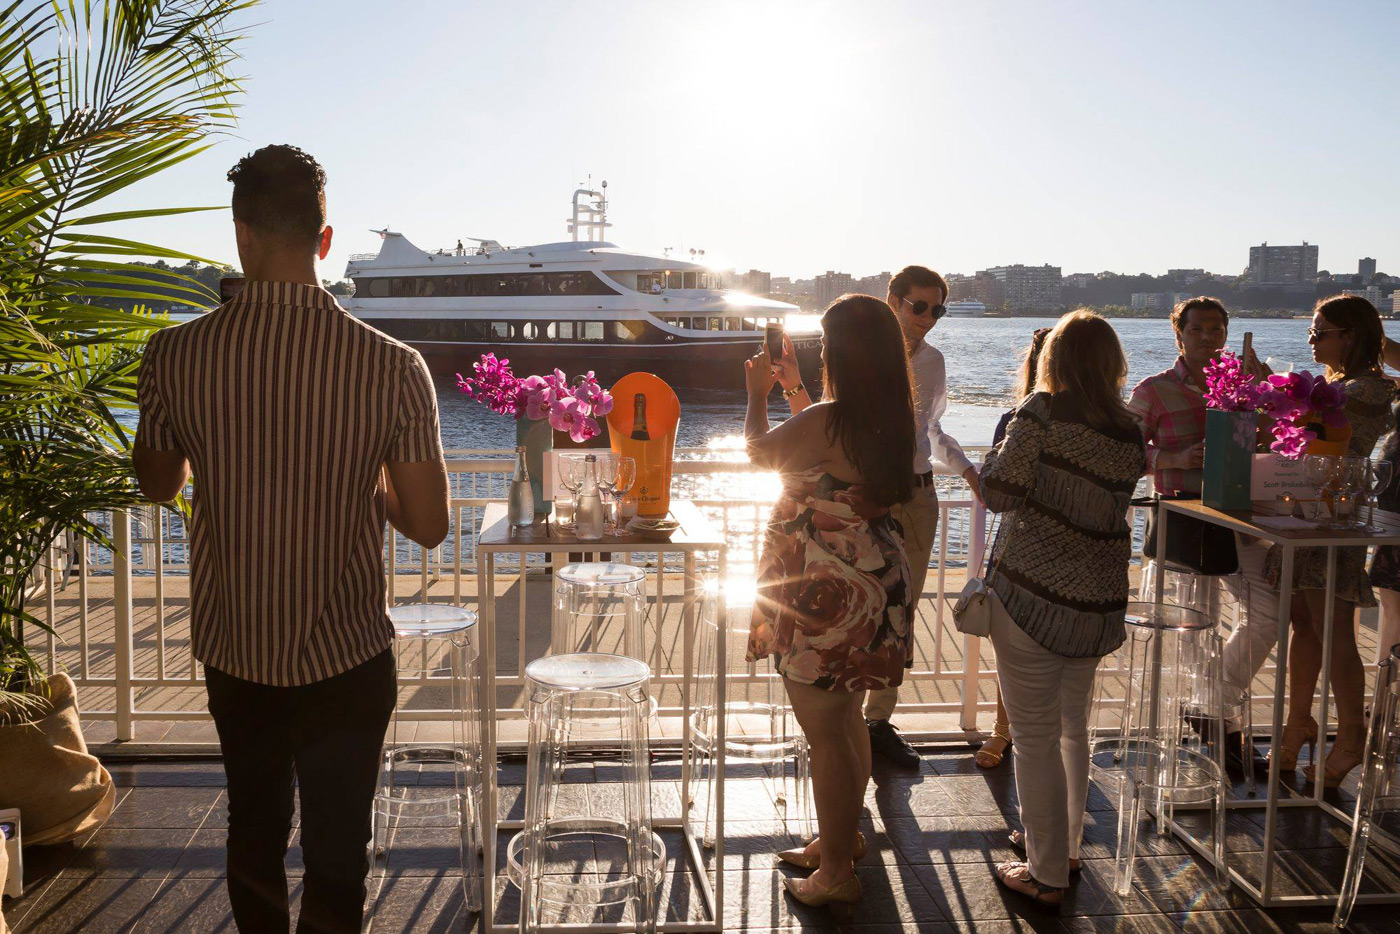 Guests mingling in front of yacht